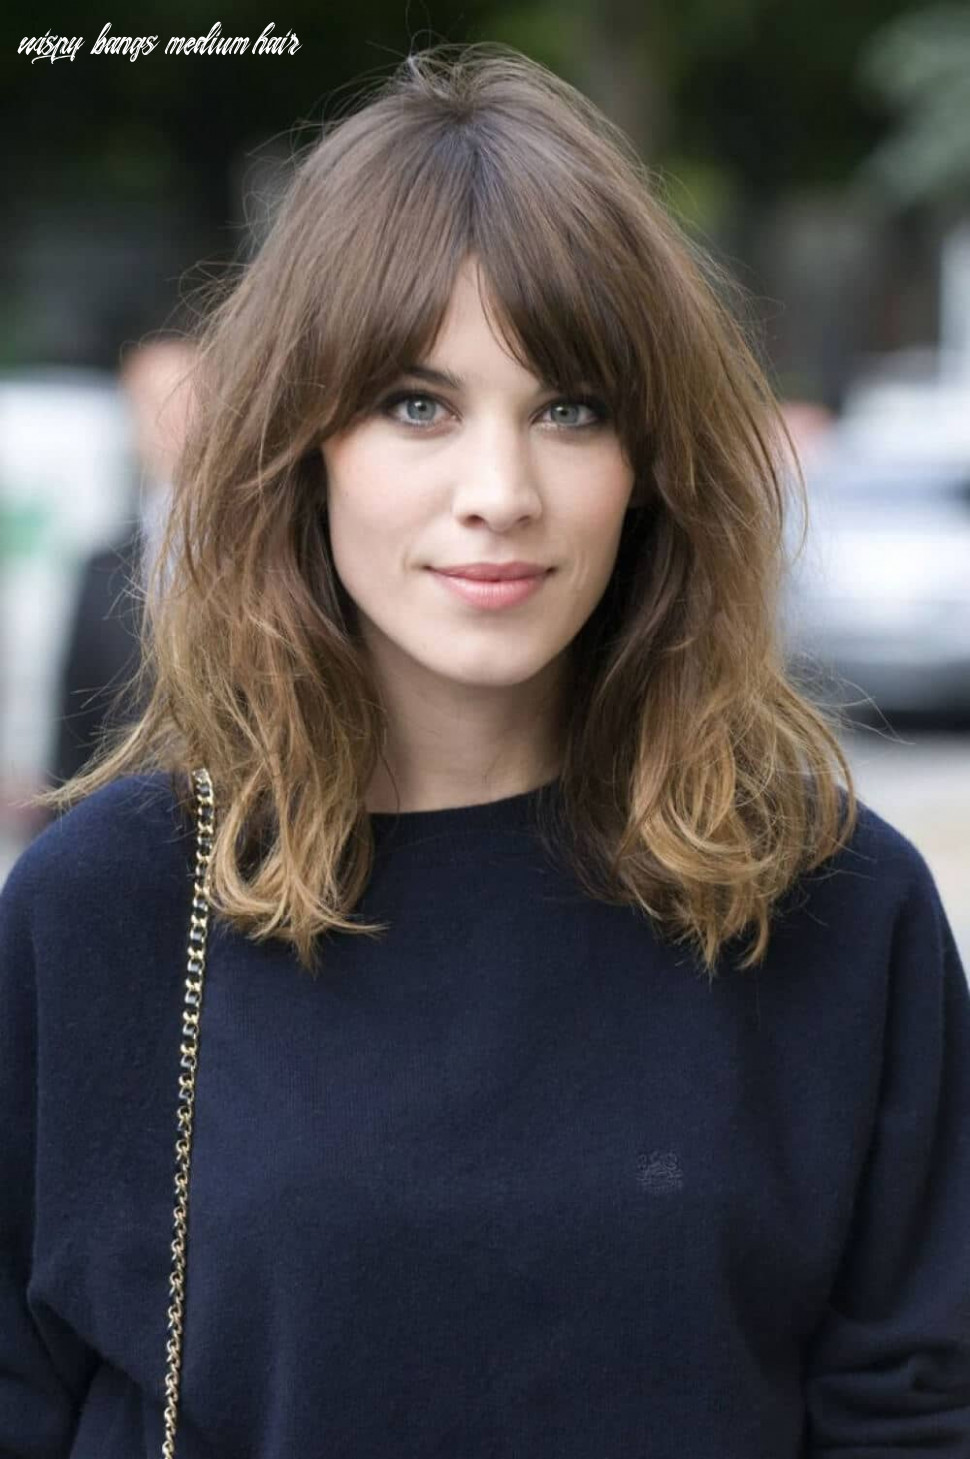 12 Breezy Hairstyles with Bangs to Make You Shine in 12